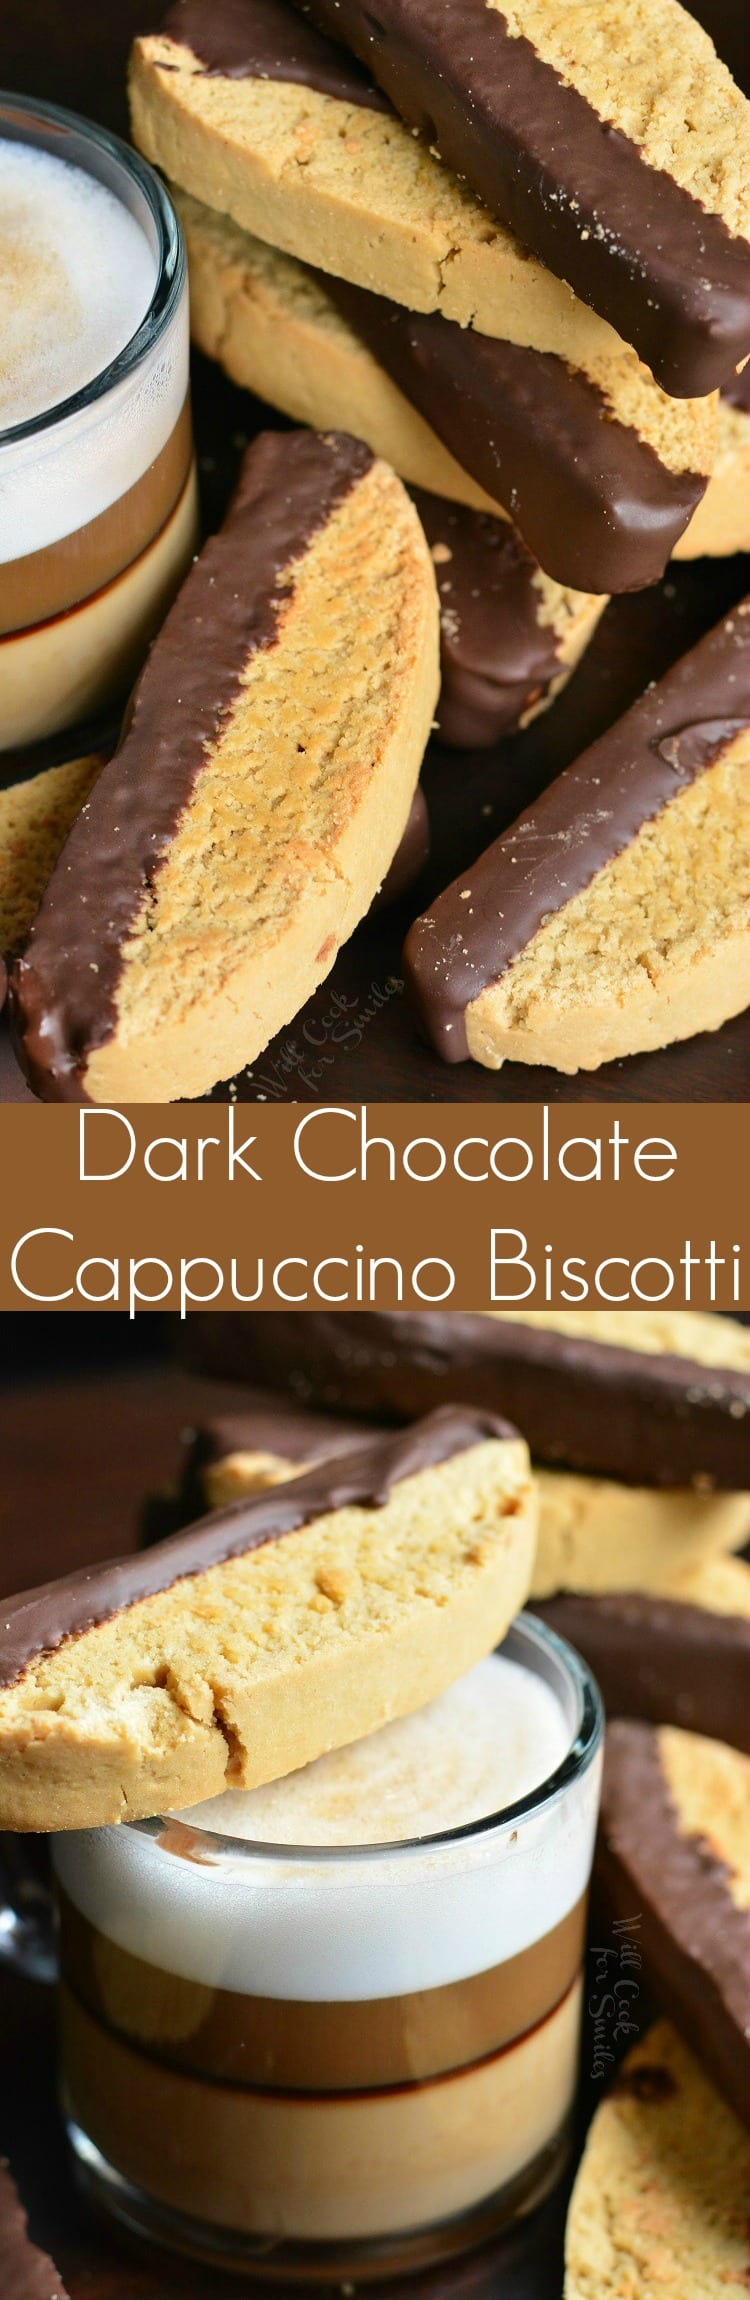 Dark Chocolate Cappuccino Biscotti. Crunchy dark chocolate dipped Cappuccino Biscotti is a cookie worth waking up for and perfect for dunking into a hot cup of coffee.